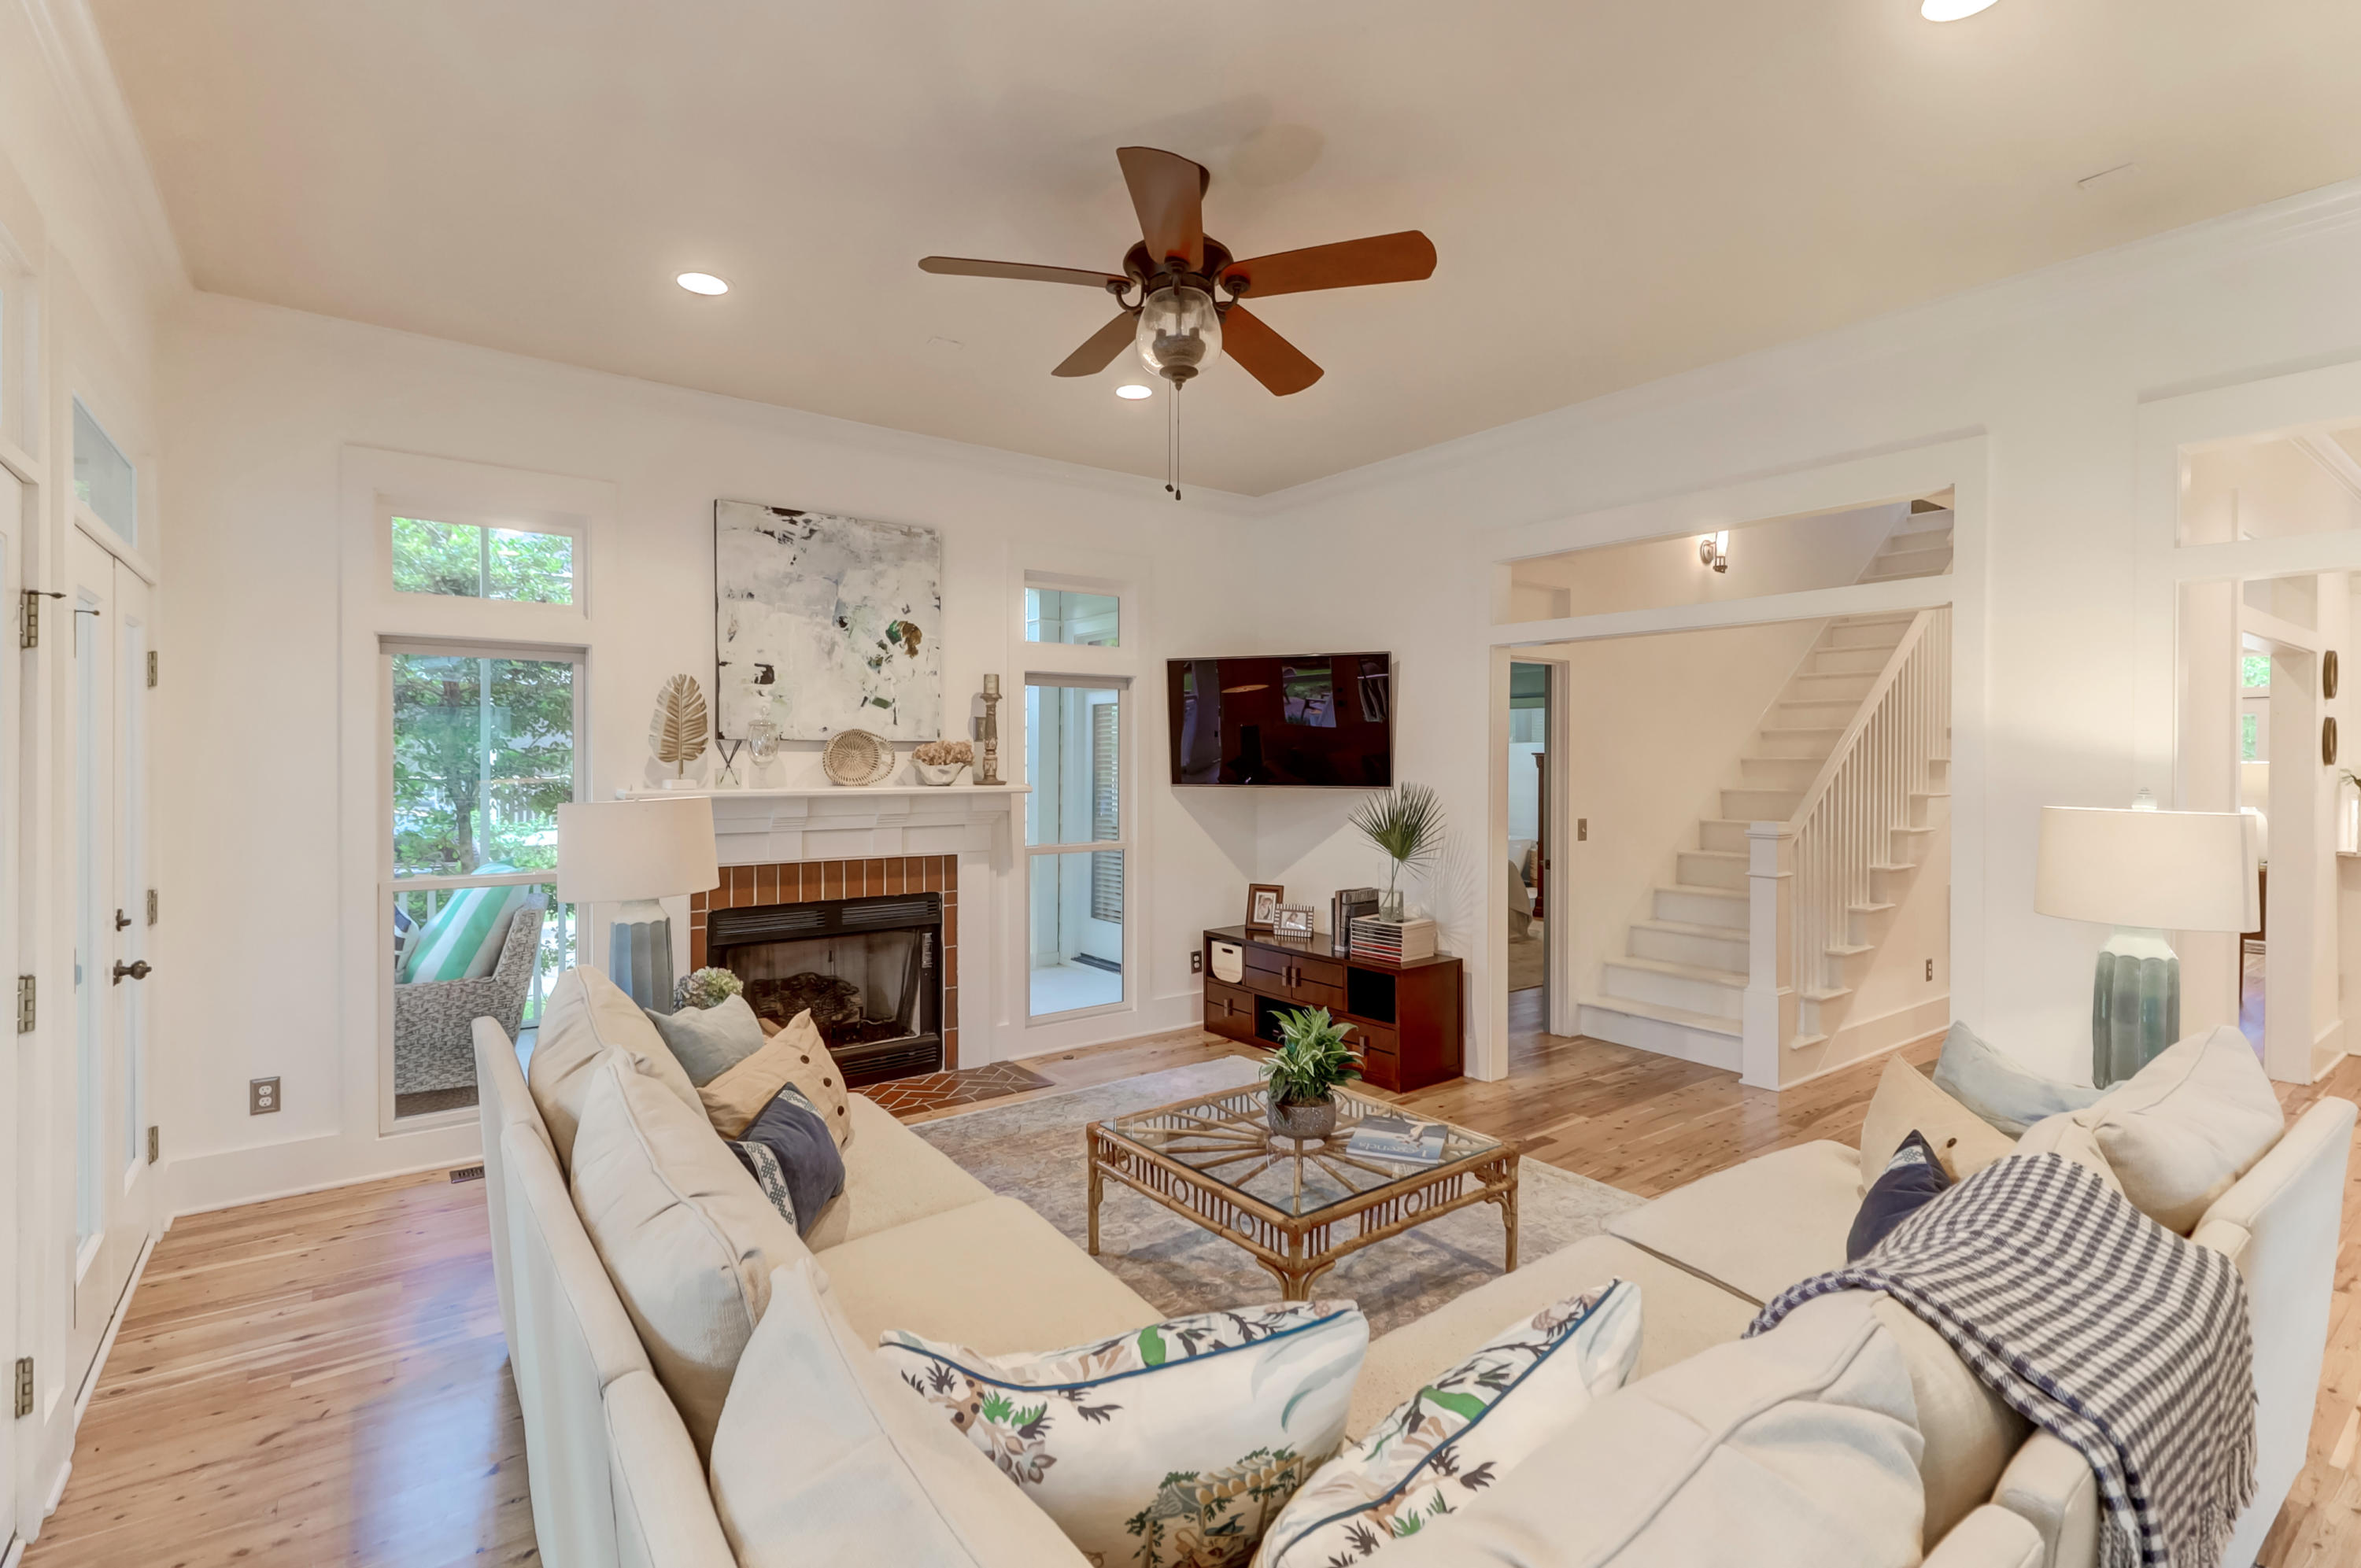 The Villages In St Johns Woods Homes For Sale - 5056 Coral Reef Dr, Johns Island, SC - 58